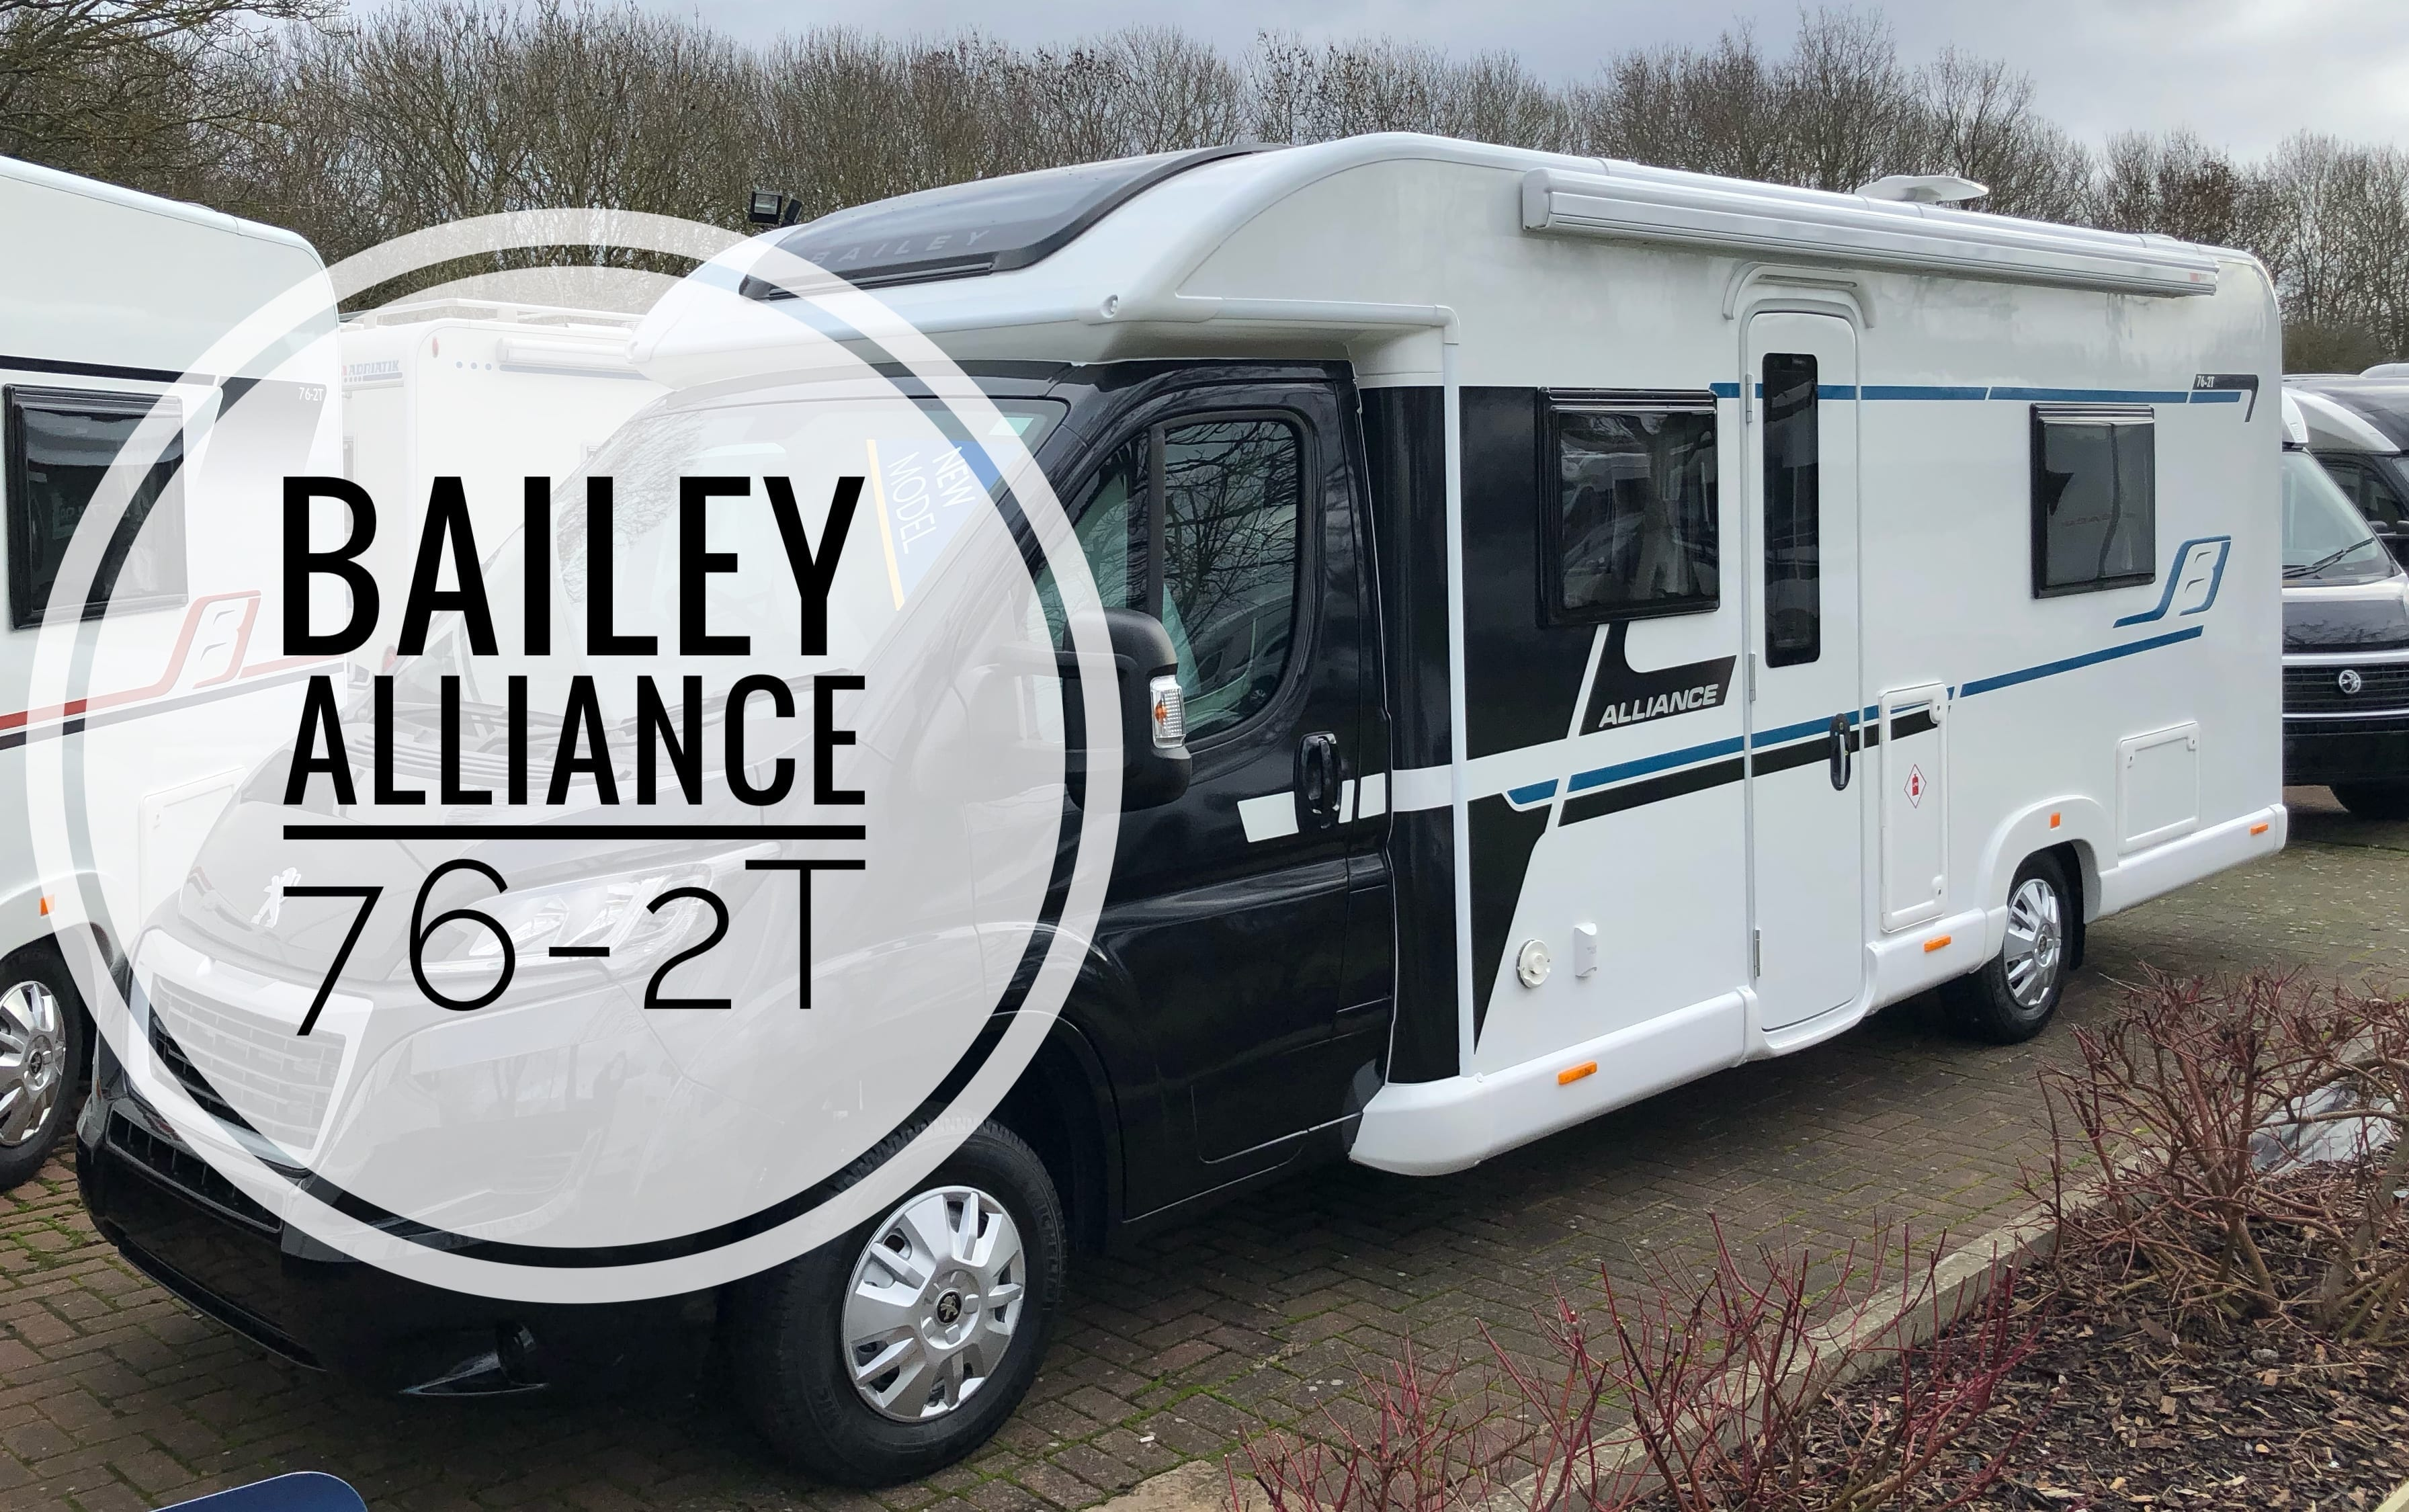 Bailey Alliance 76-2T